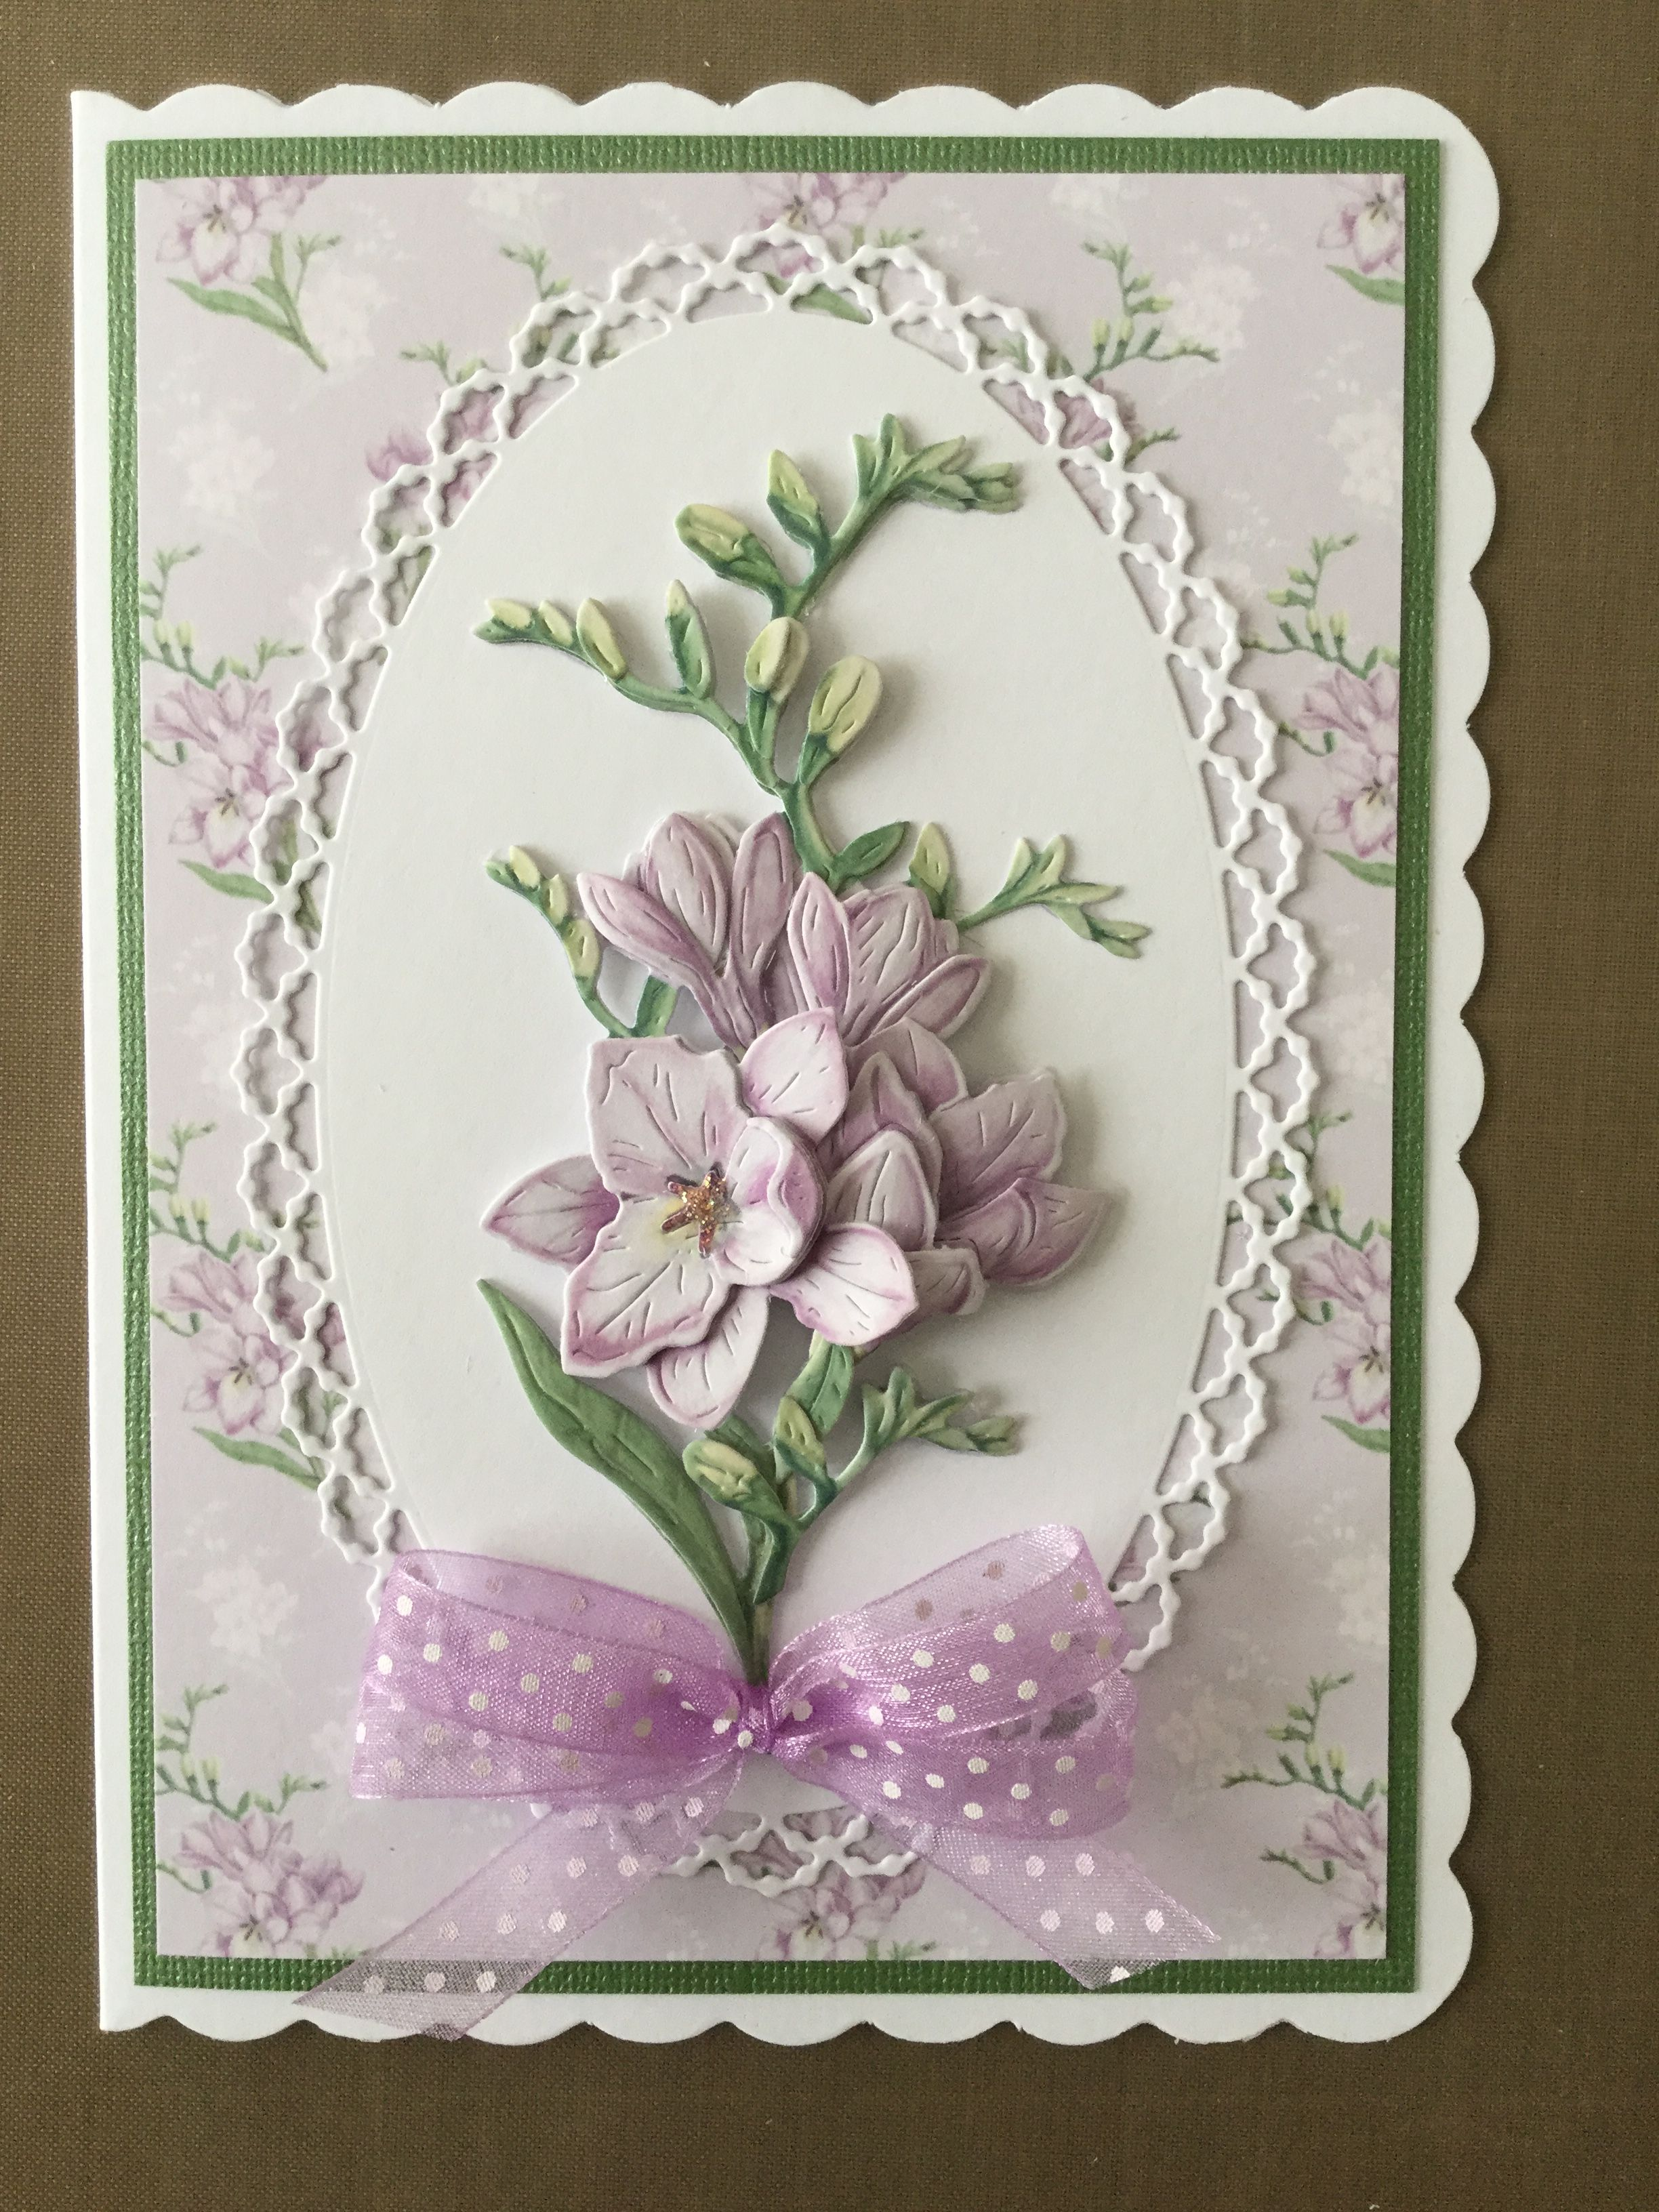 Card Made Using Tattered Lace Heiress Die And Backing Papers